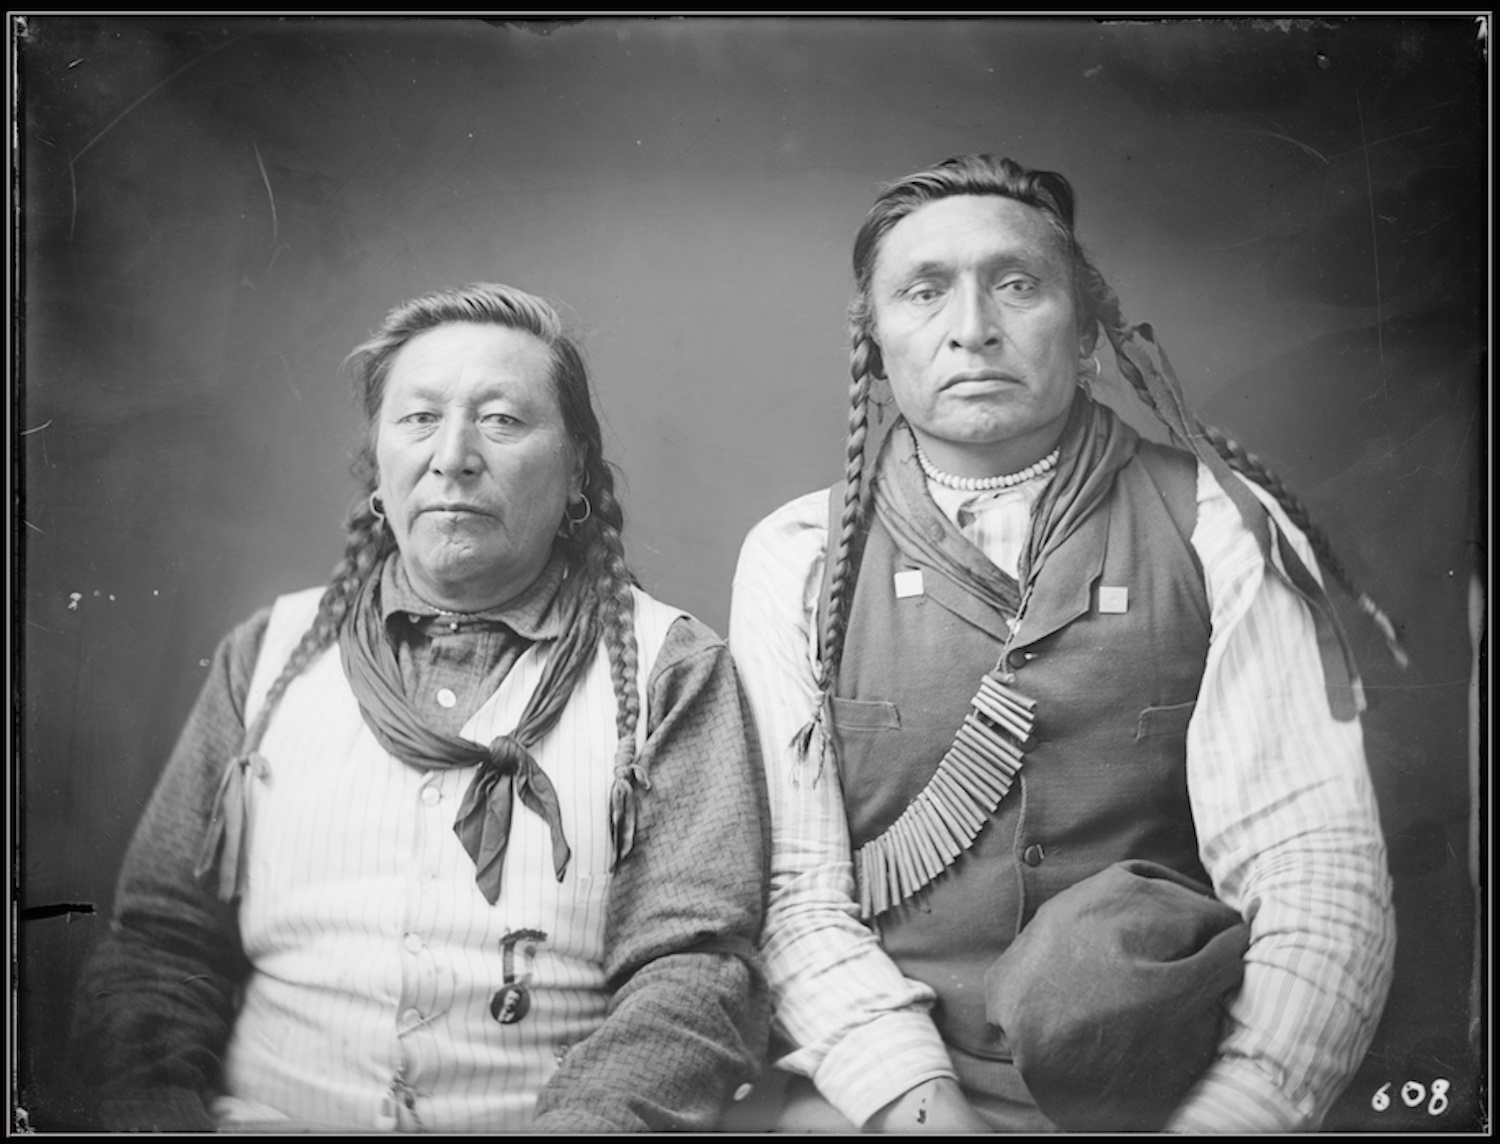 A portrait of Chief Plenty Coups and Bull Snake. Photograph courtesy of the Richard Throssell Collection, American Heritage Center,  University of Wyoming.Original photograph by Throssel Photocraft Company, 6.5x8.5 inch glass plate negative.